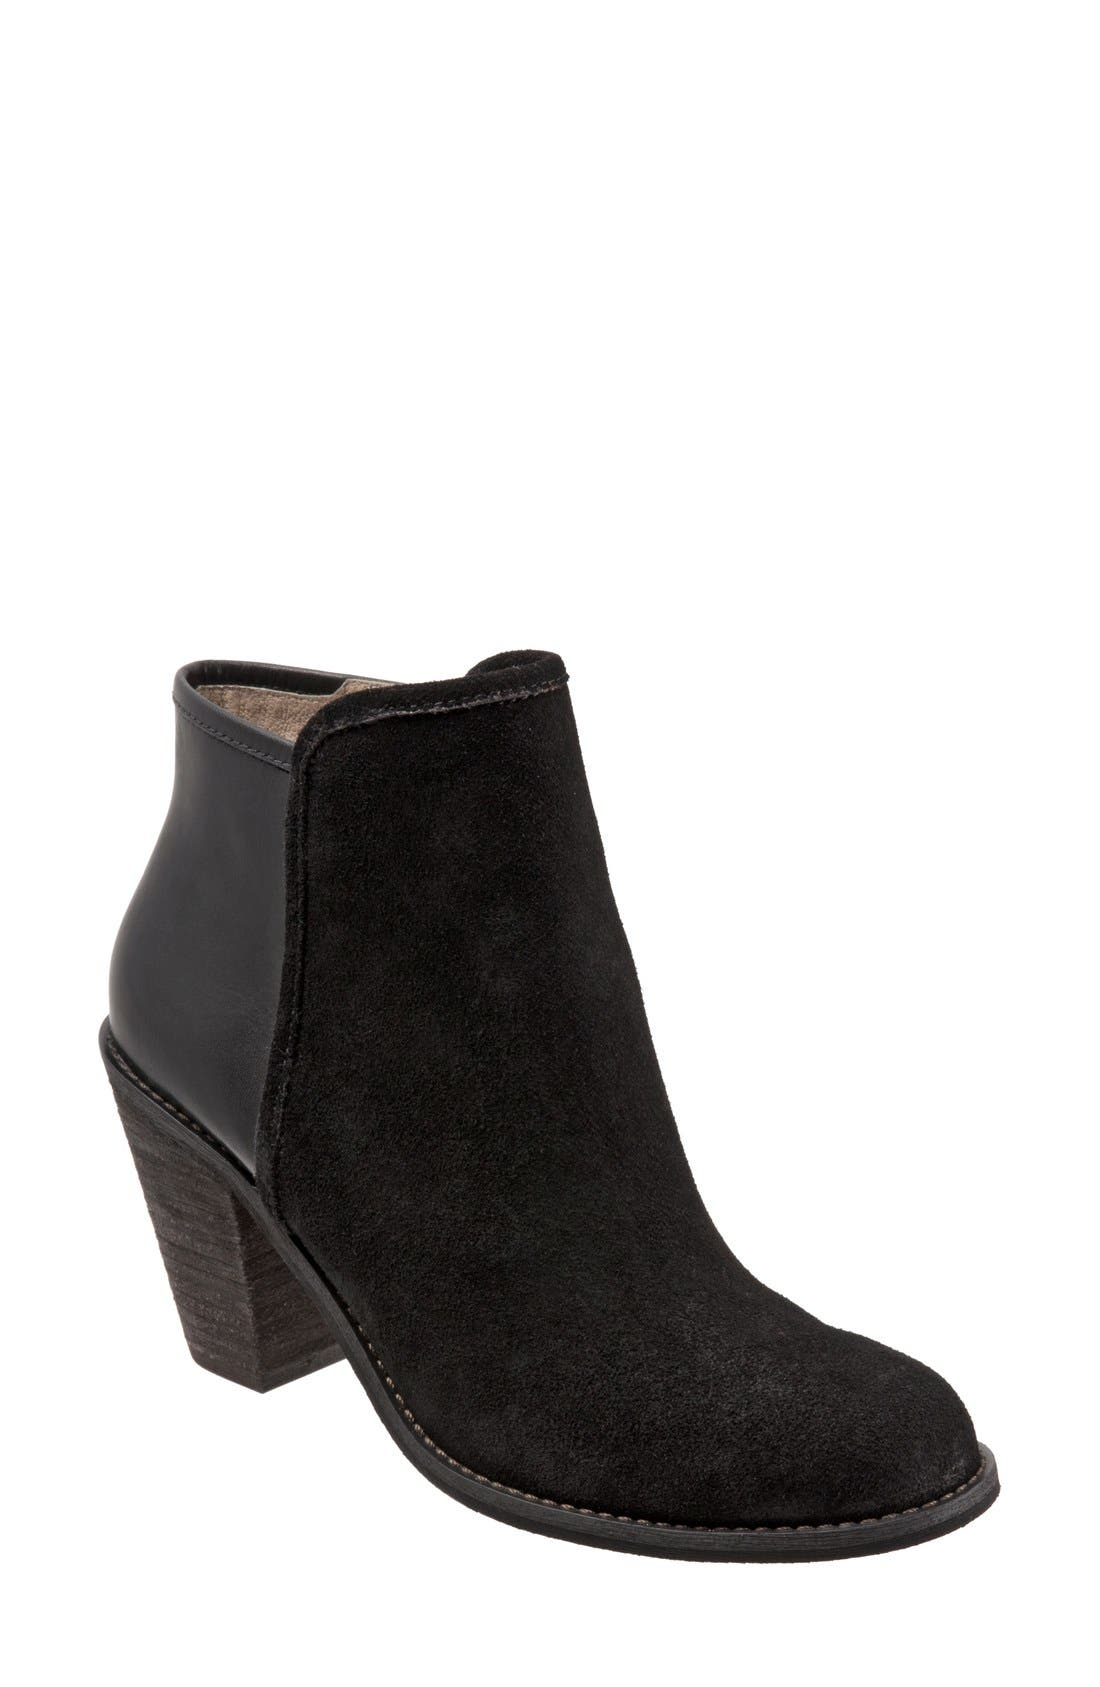 'Frontier' Bootie,                             Main thumbnail 1, color,                             Black